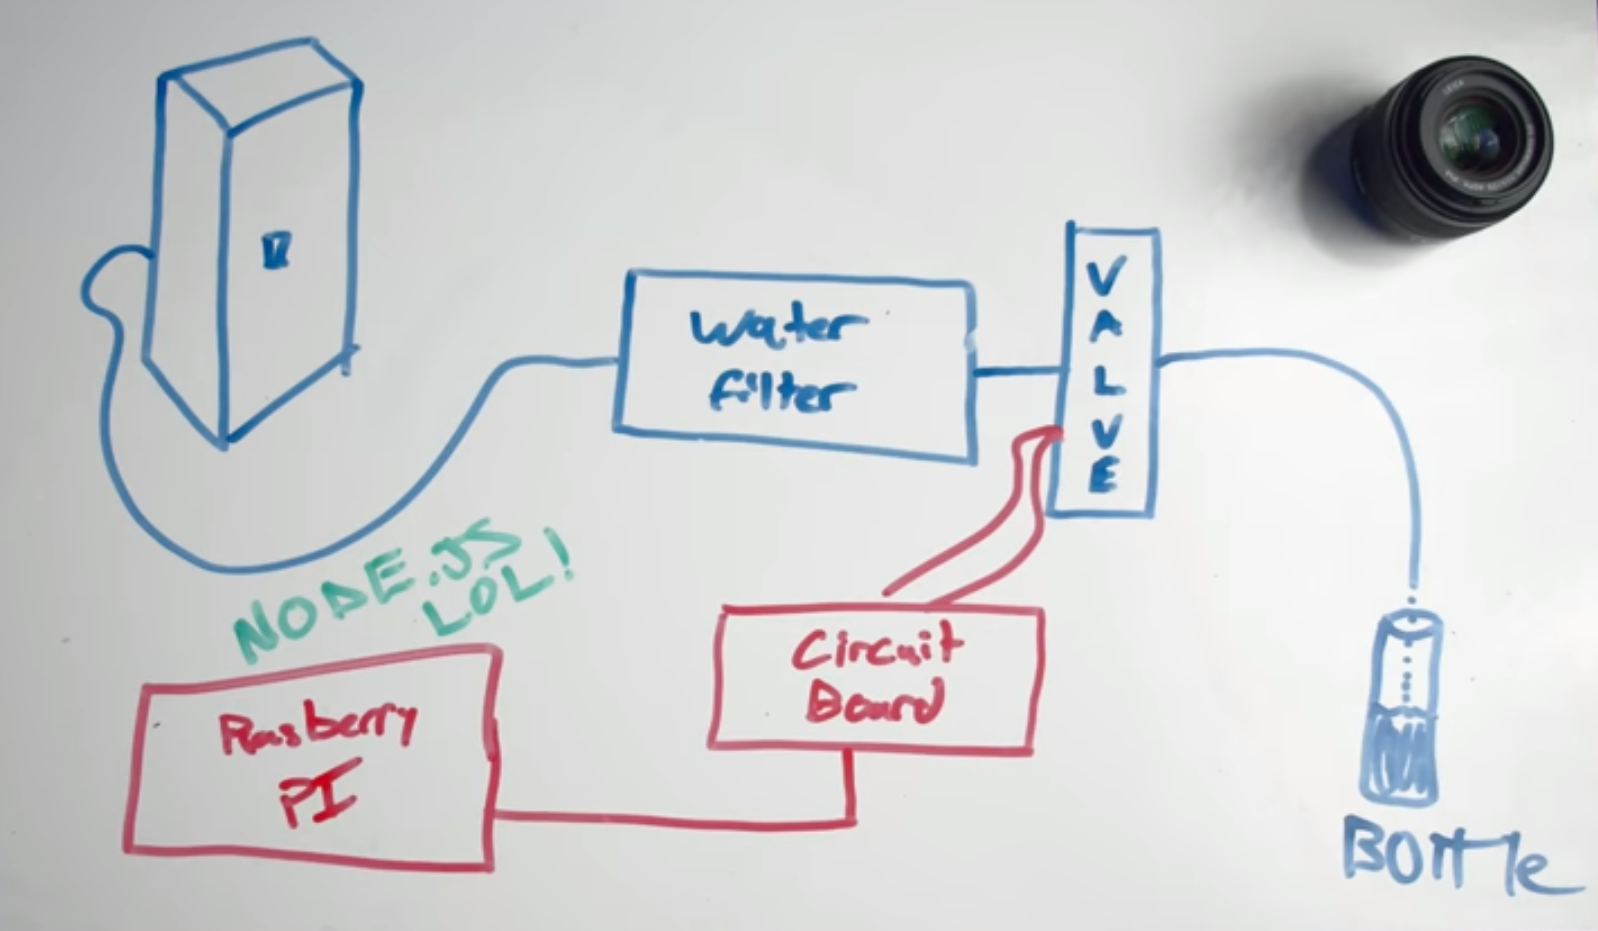 Diagram of the water bottle filler setup, hand-drawn by the maker